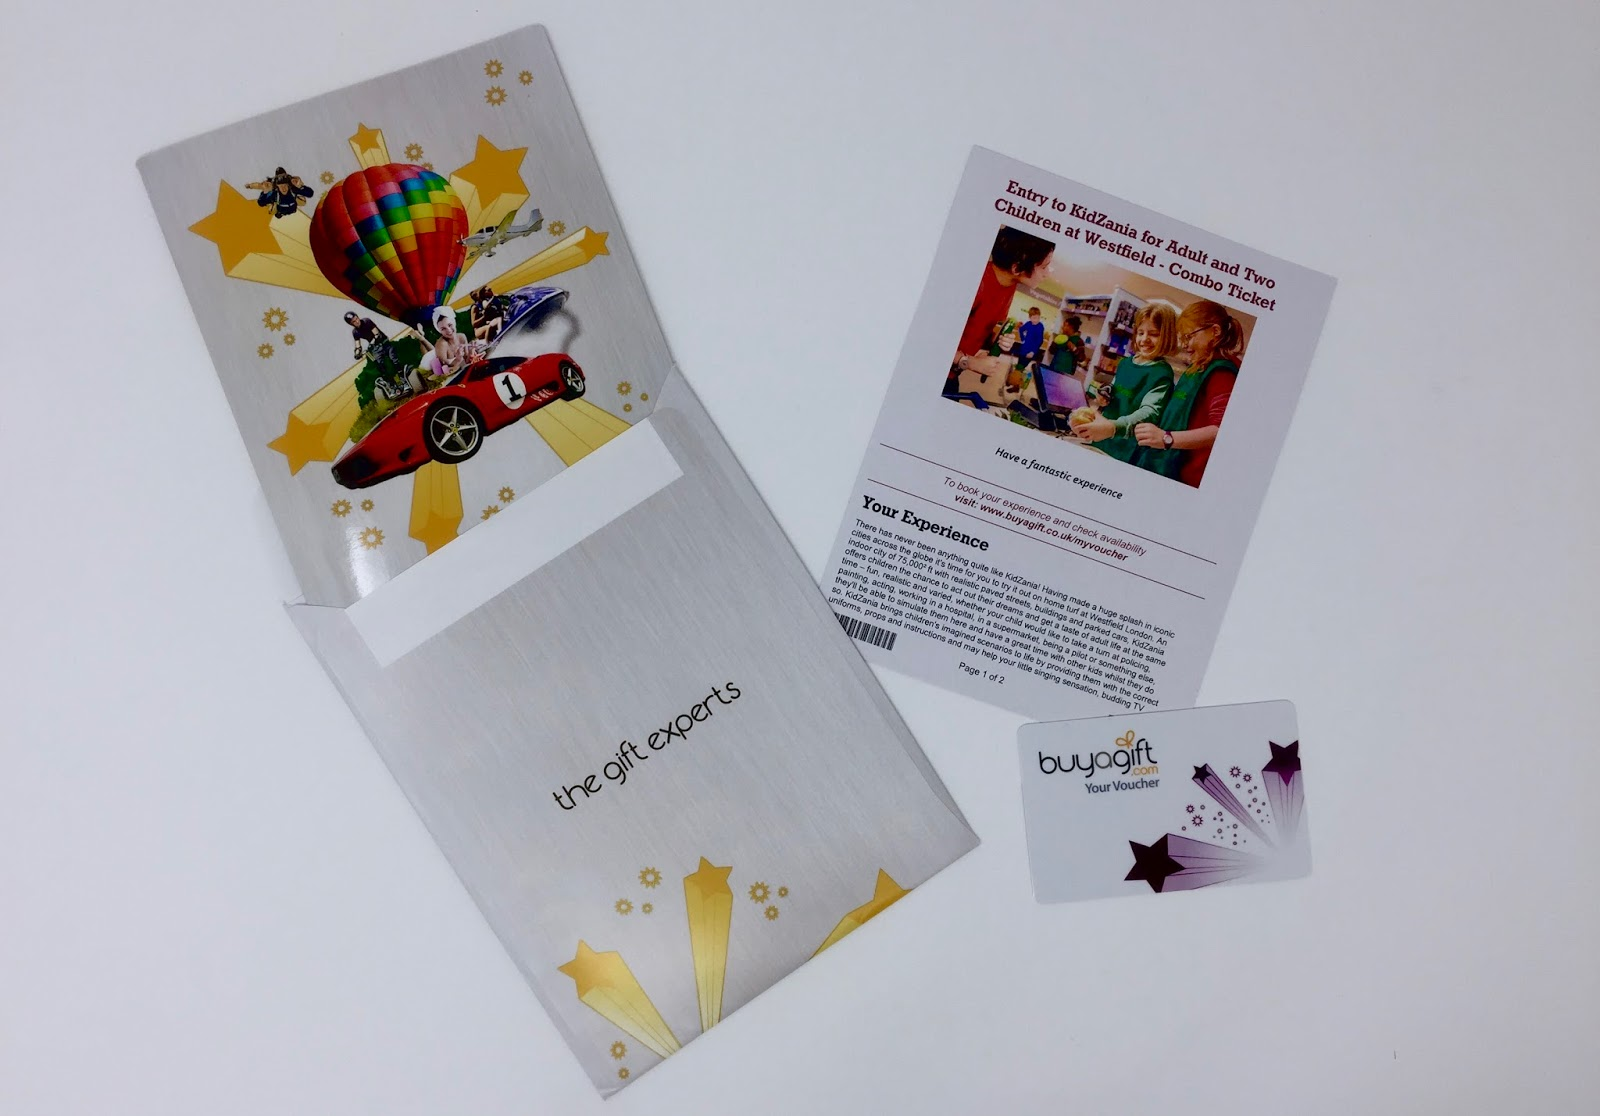 An envelope, a card, a printed description of the experience and a gift card for Kidzania from Buy a Gift